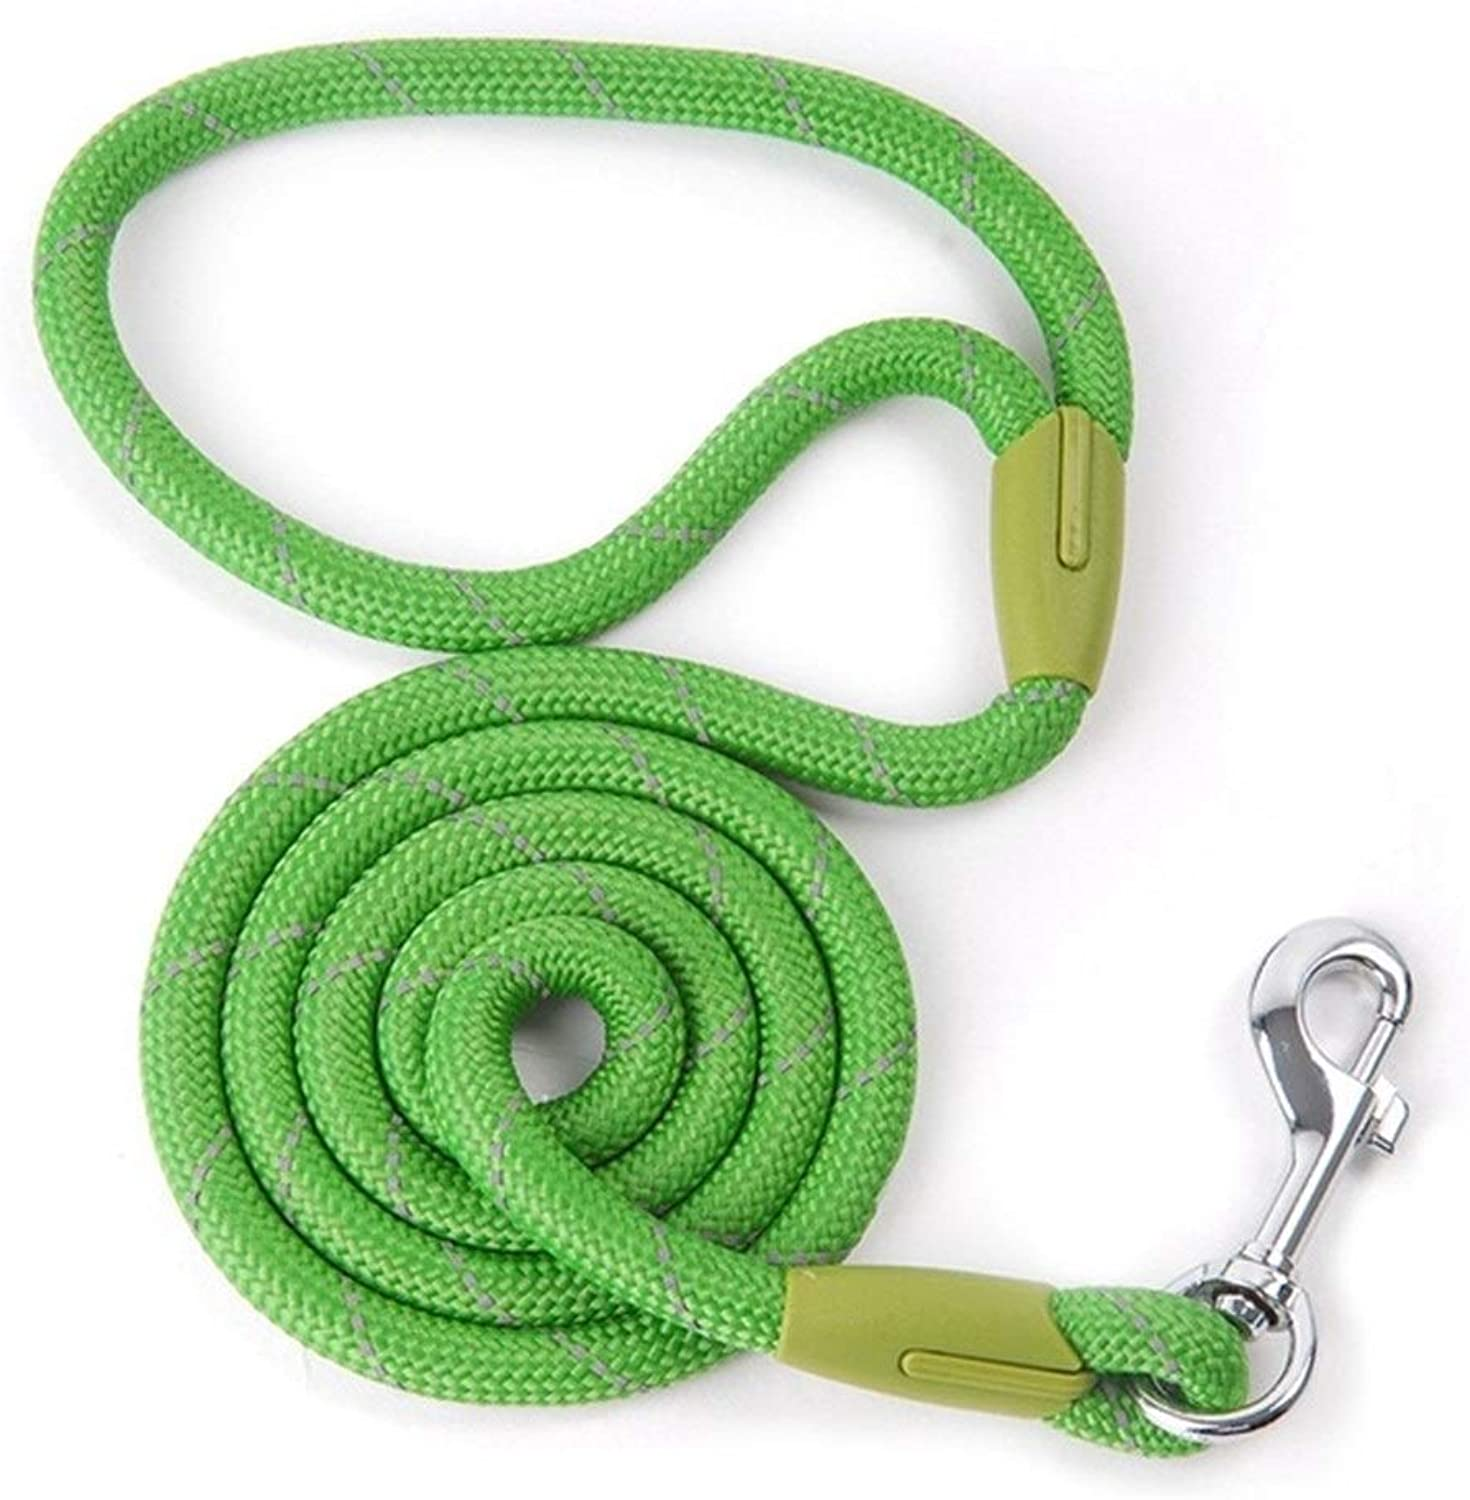 BeTTi Pet Products Dog Leash for Small Large Dogs Leashes Reflective Dog Leash Rope Pets Lead DogCollar Harness Nylon Running Leashes (color   Green, Size   L 1.2 x 120 cm)